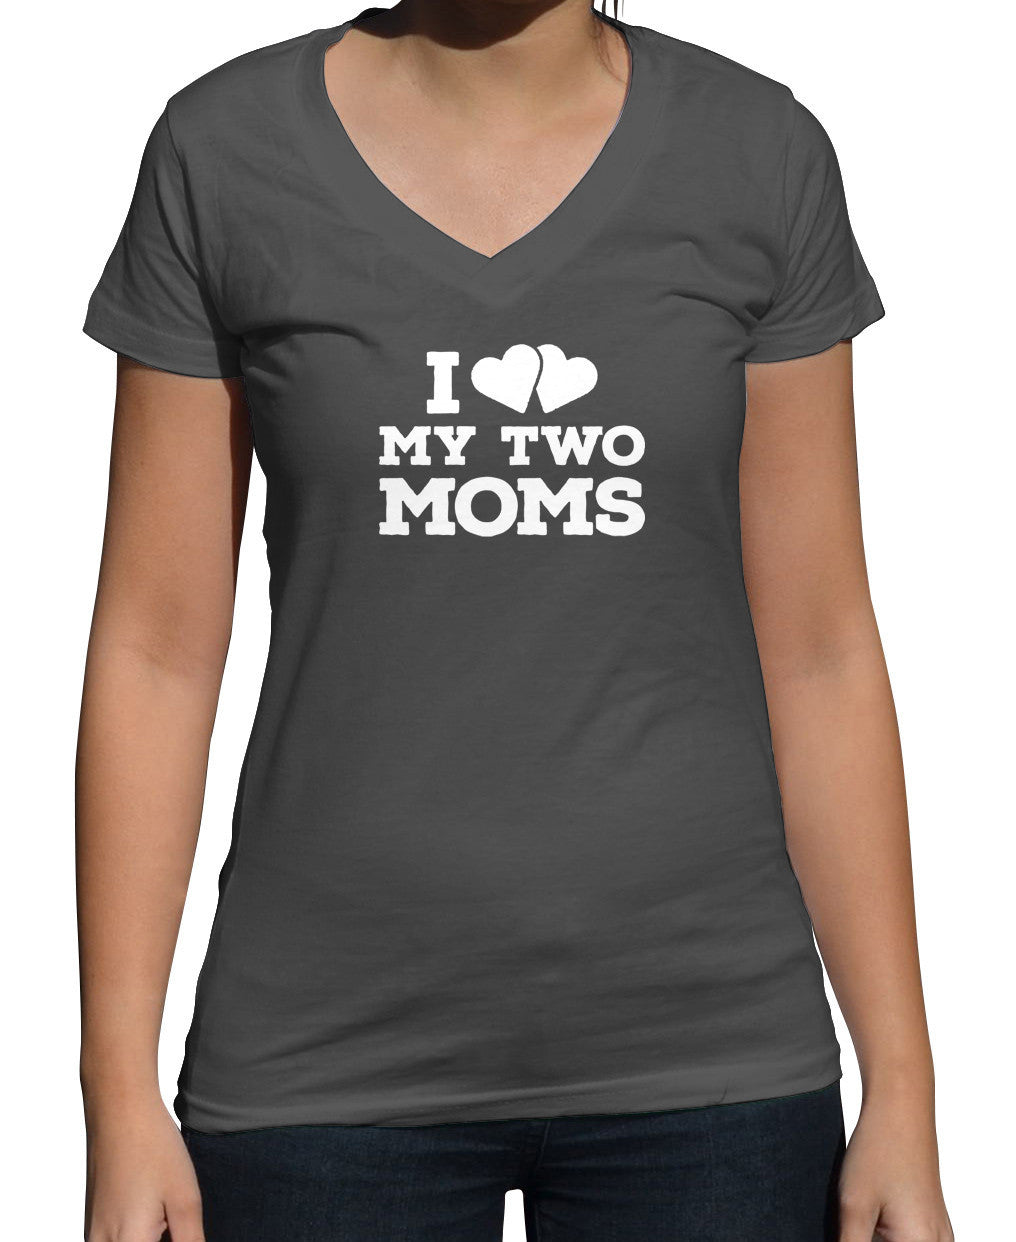 Women's I Love My Two Moms Vneck T-Shirt - Juniors Fit